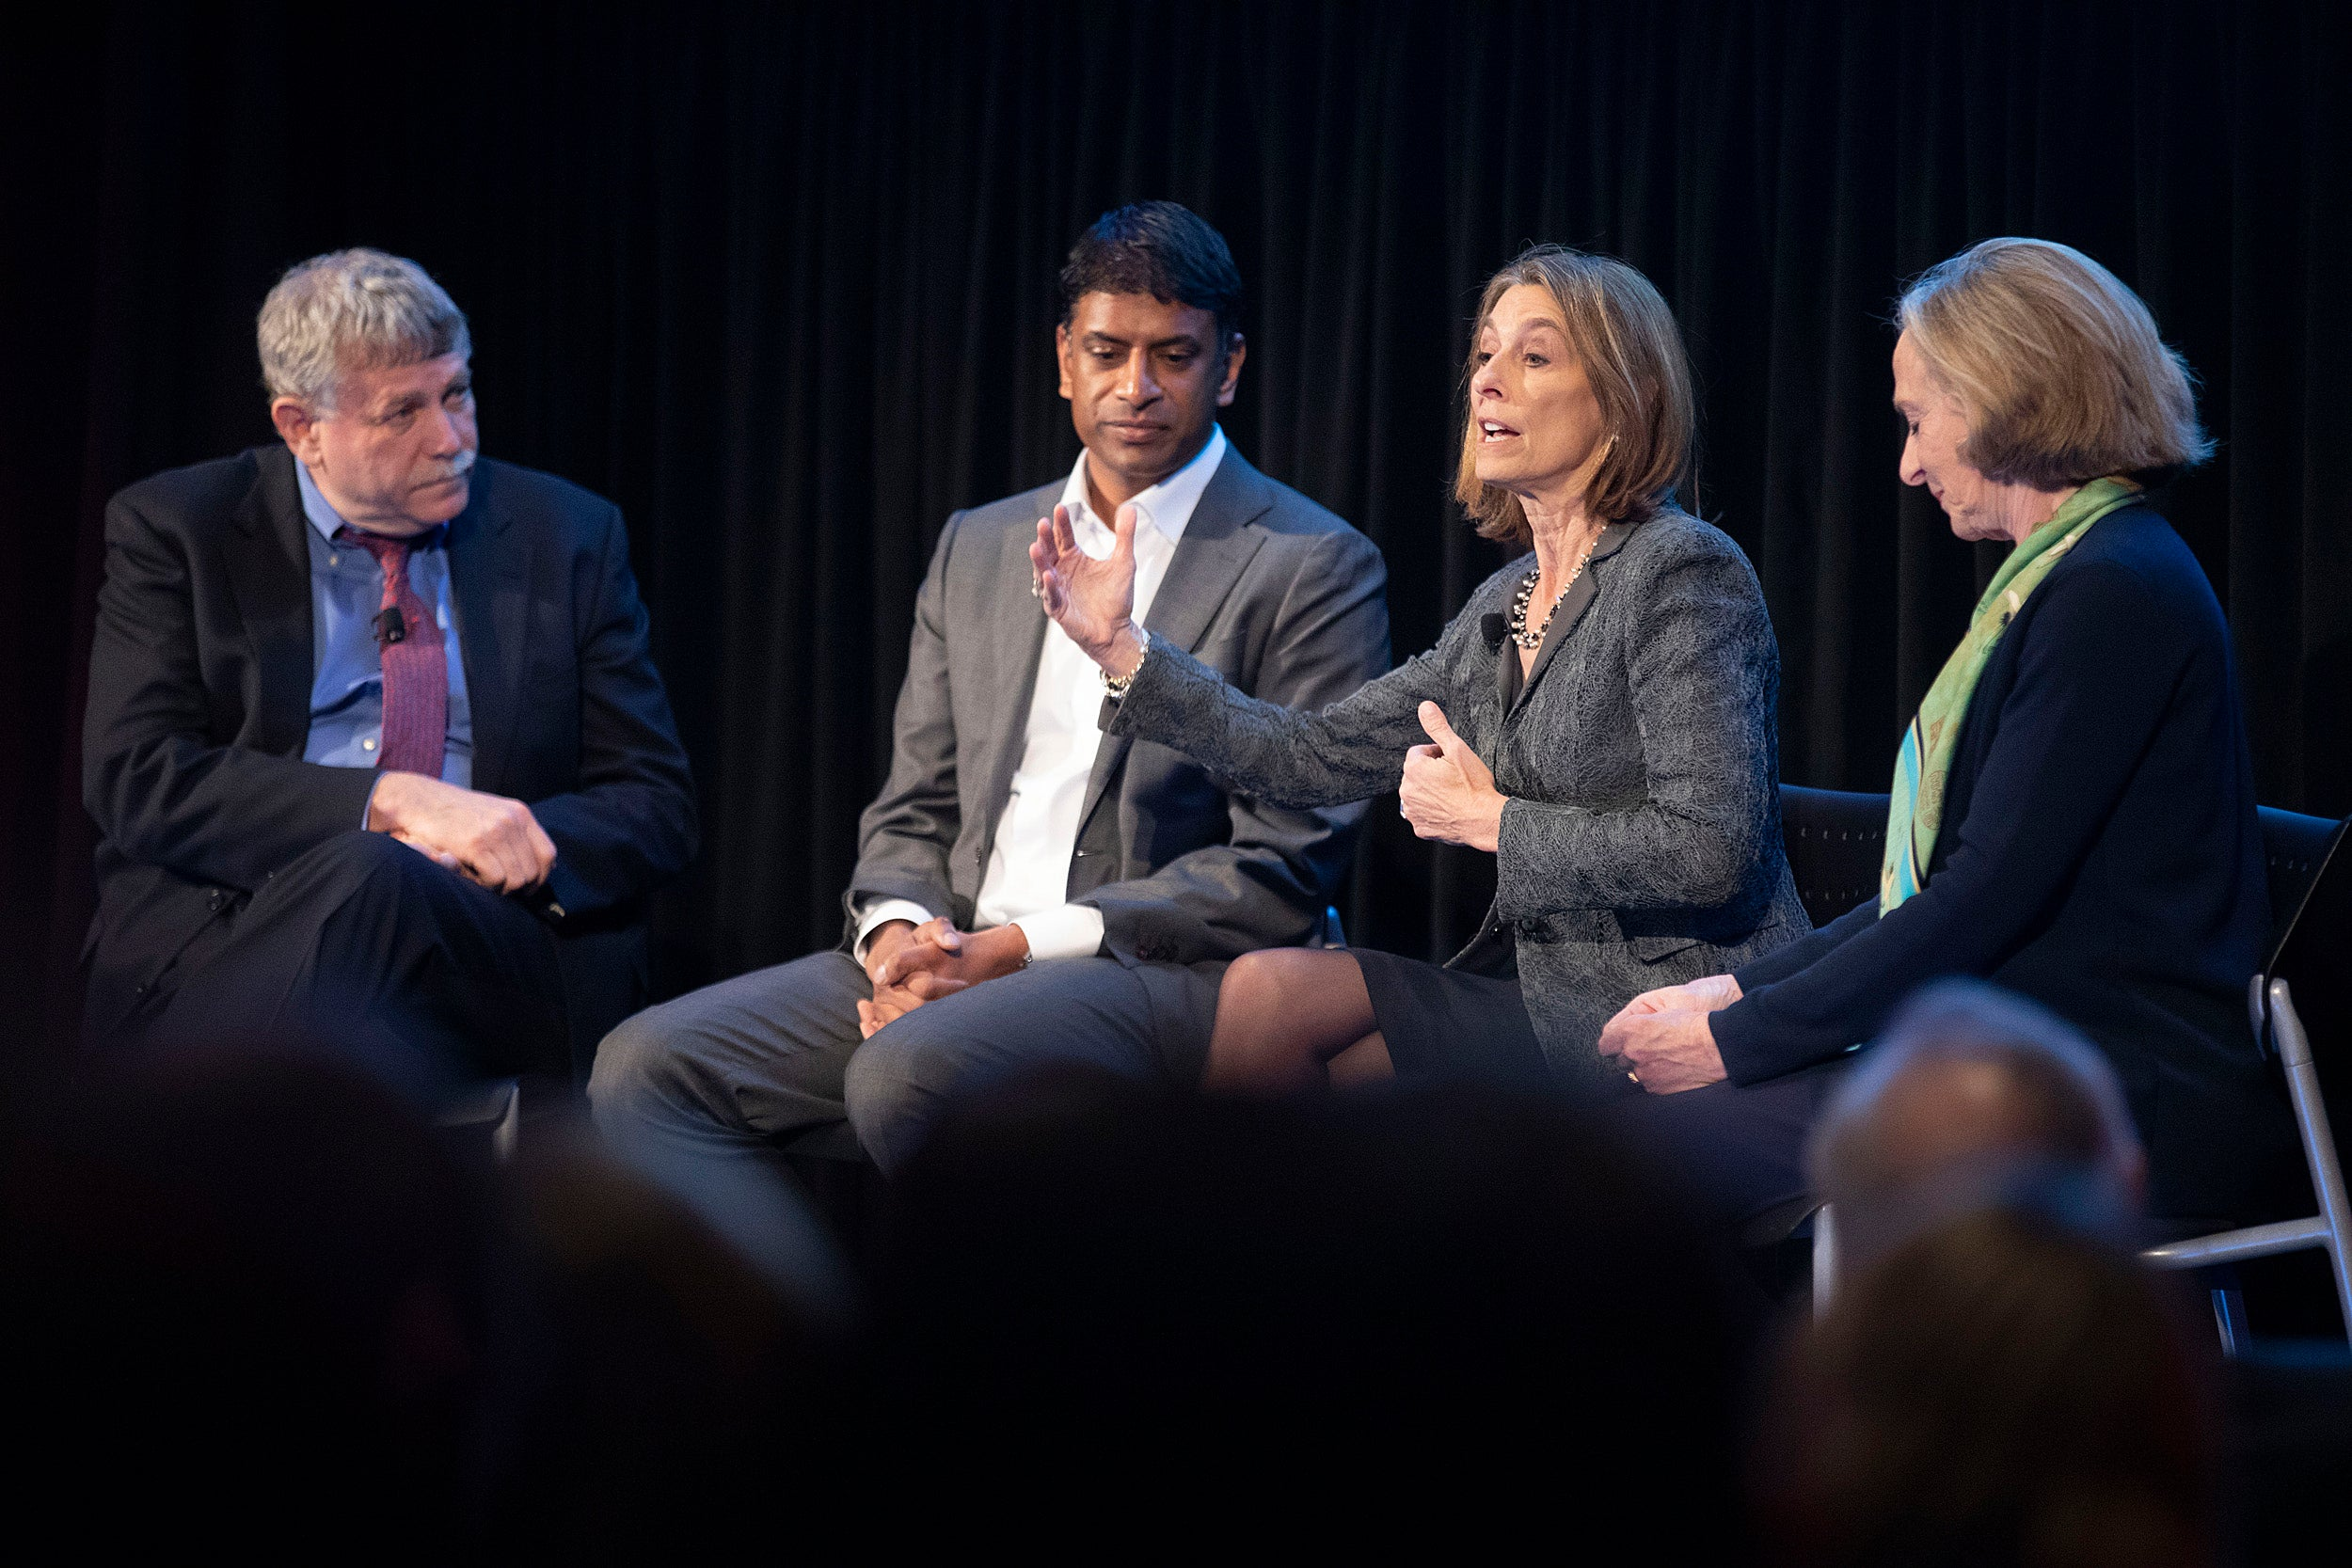 Eric Lander, (from left) President and Founding Director, Broad Institute, Vasant Narasimhan, Chief Executive Officer, Novartis, Laurie Glimcher, President and CEO, Dana-Farber Cancer Institute, Susan Hockfield, President Emerita and Professor of Neuroscience, MIT